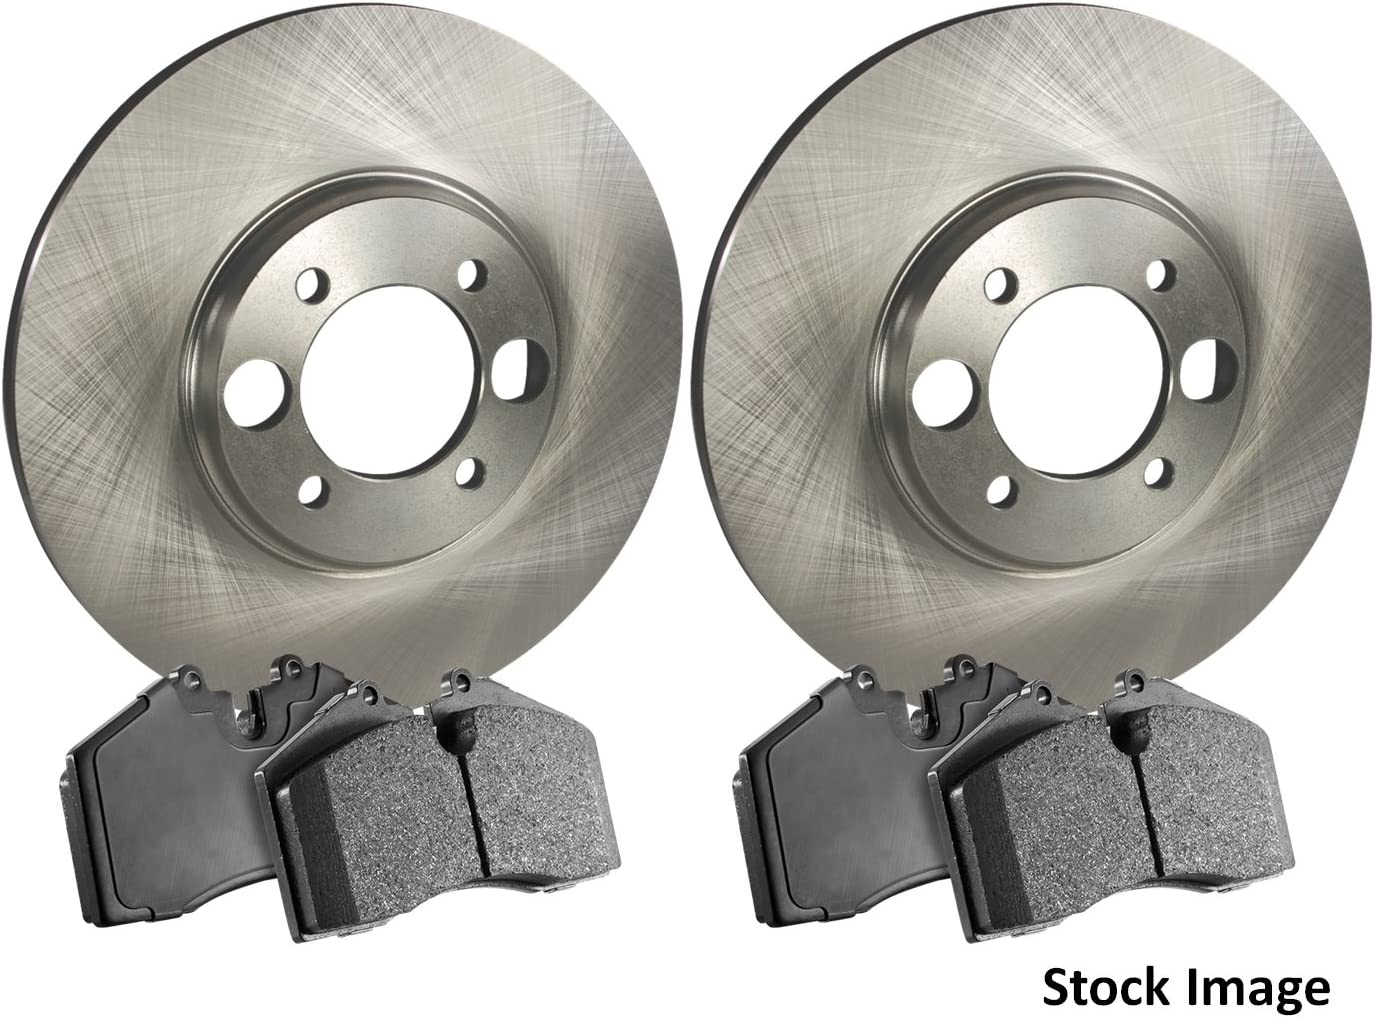 Stirling 2013 For Acura TL Rear Disc Brake Rotors and Ceramic Brake Pads